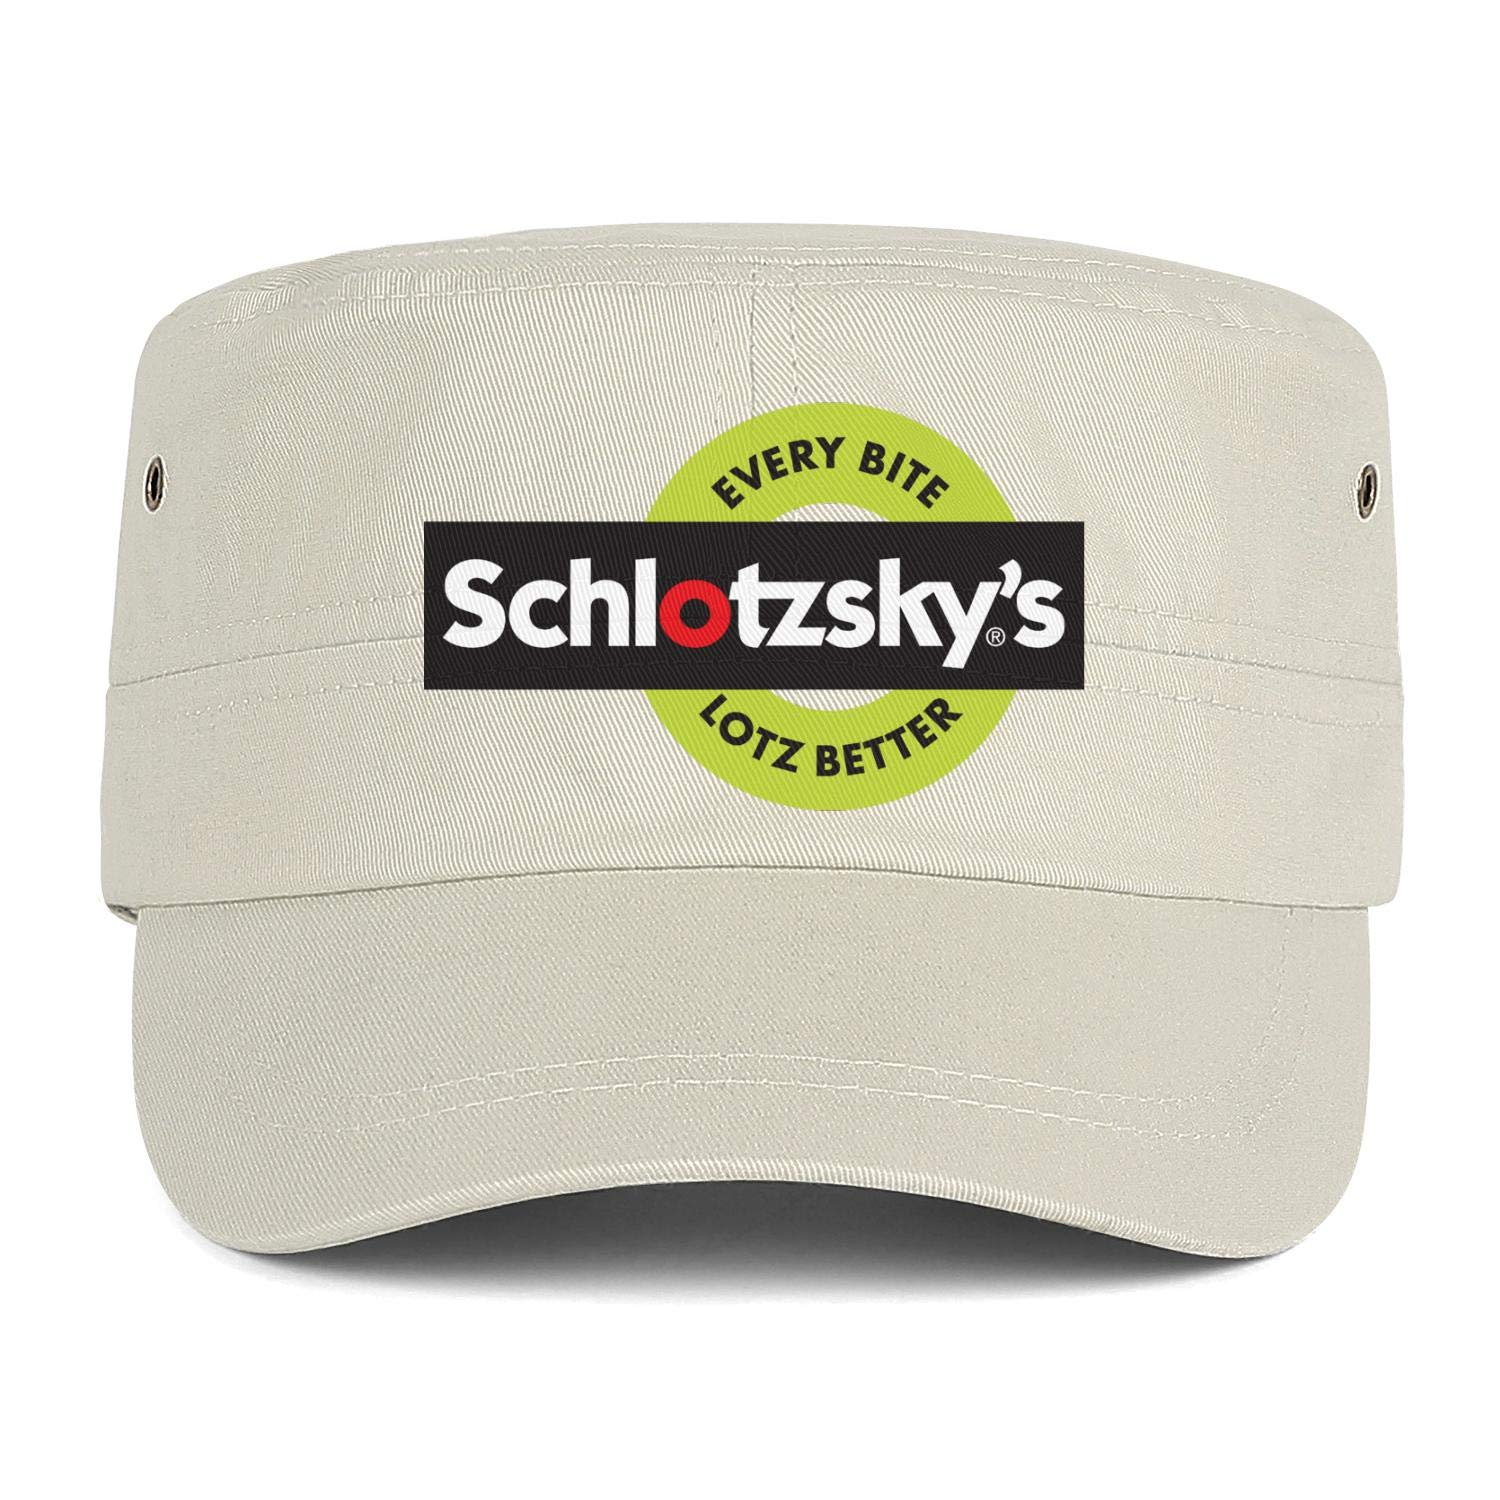 US-Army Schlotzskys Trucker Cap Six Panel Athletic Core Bowler Cap Men Women